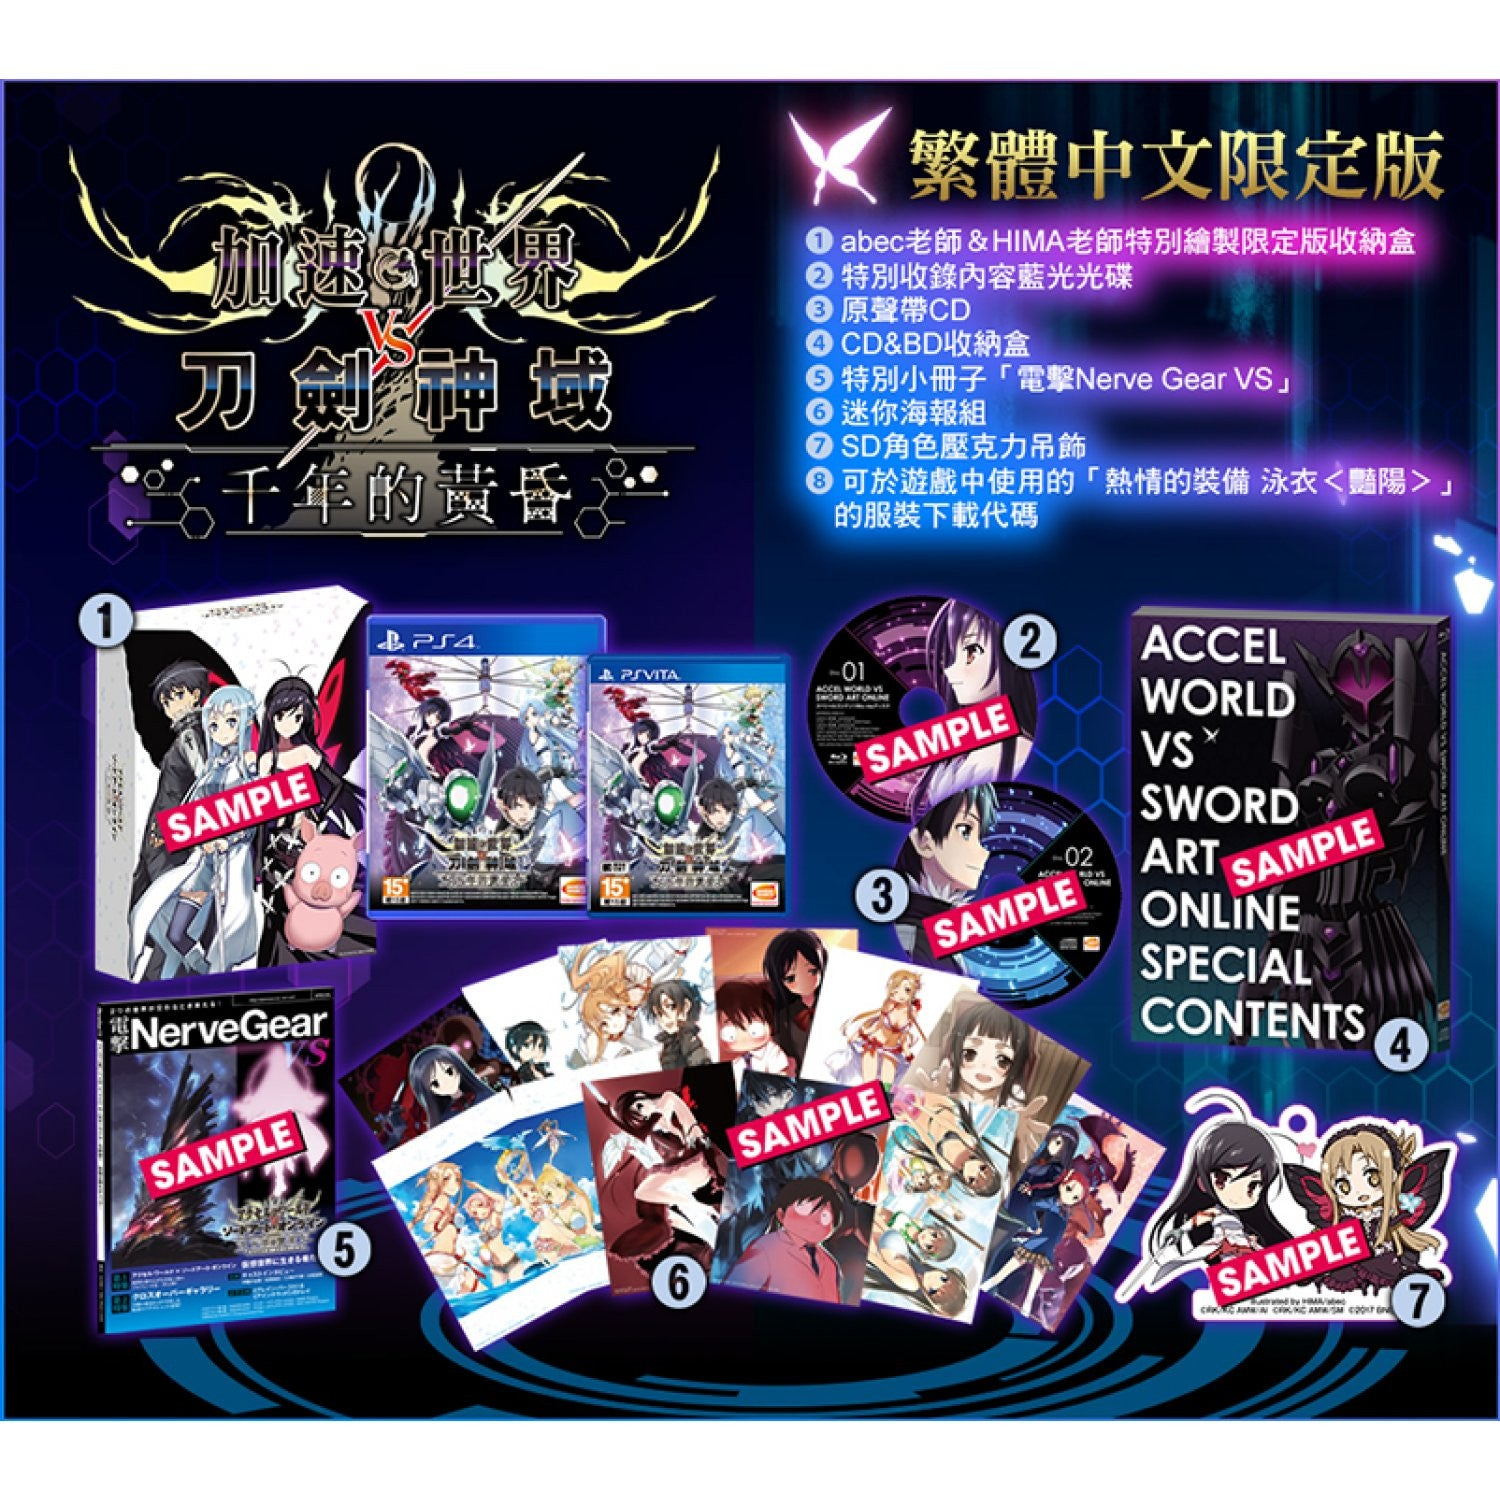 PS4 Accel World Vs. Sword Art Online: Millennium Twilight (Chinese)